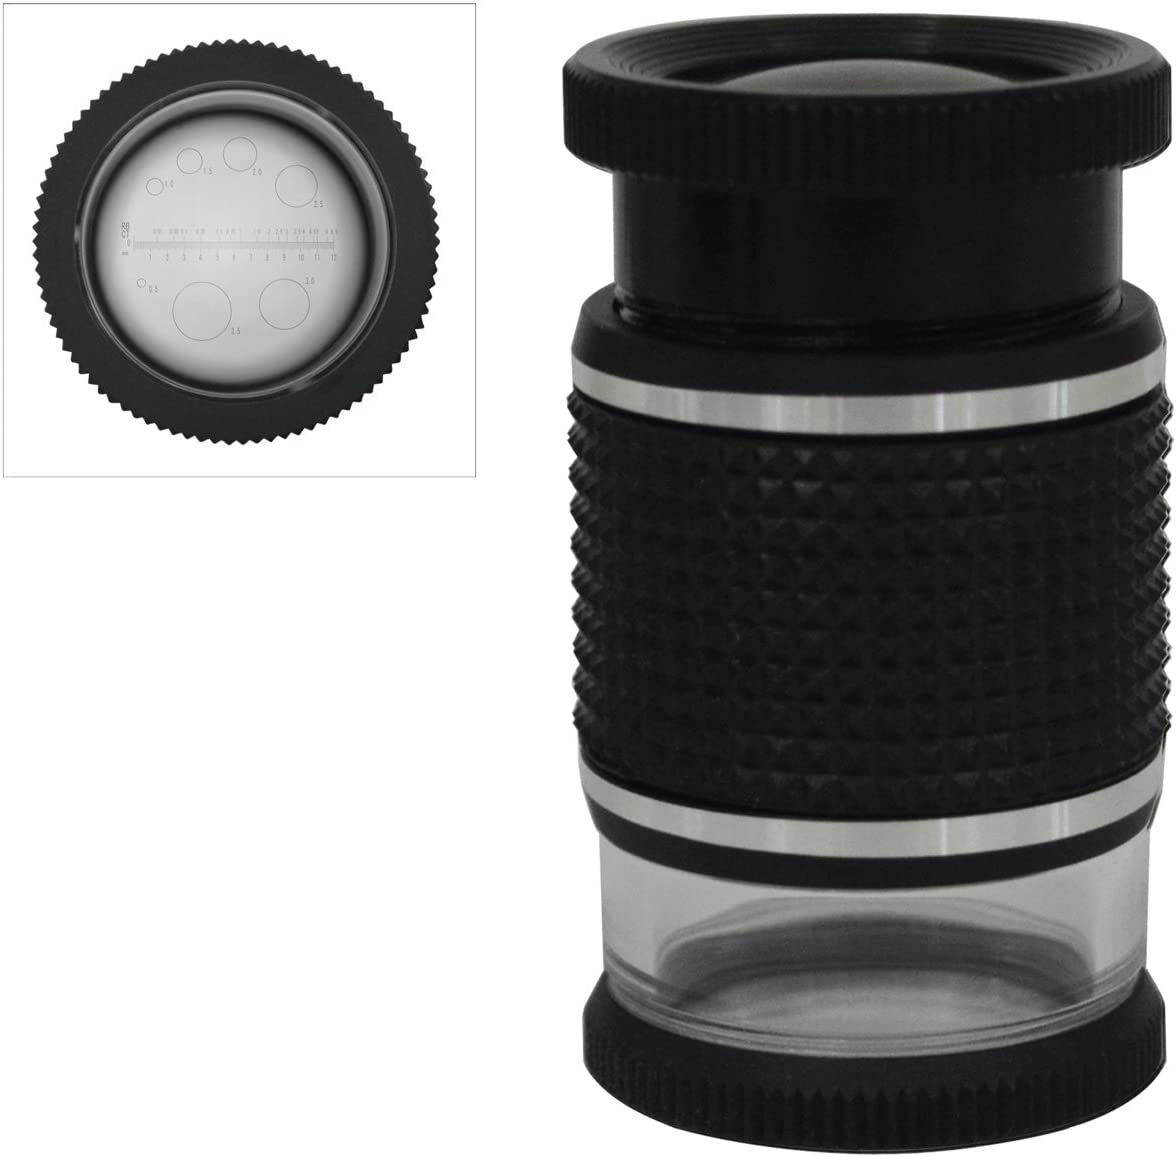 18 MM 10X Triplet Eye Loupe with Diamond Estimation Scale Jewelry Inspection Magnifying Loupe